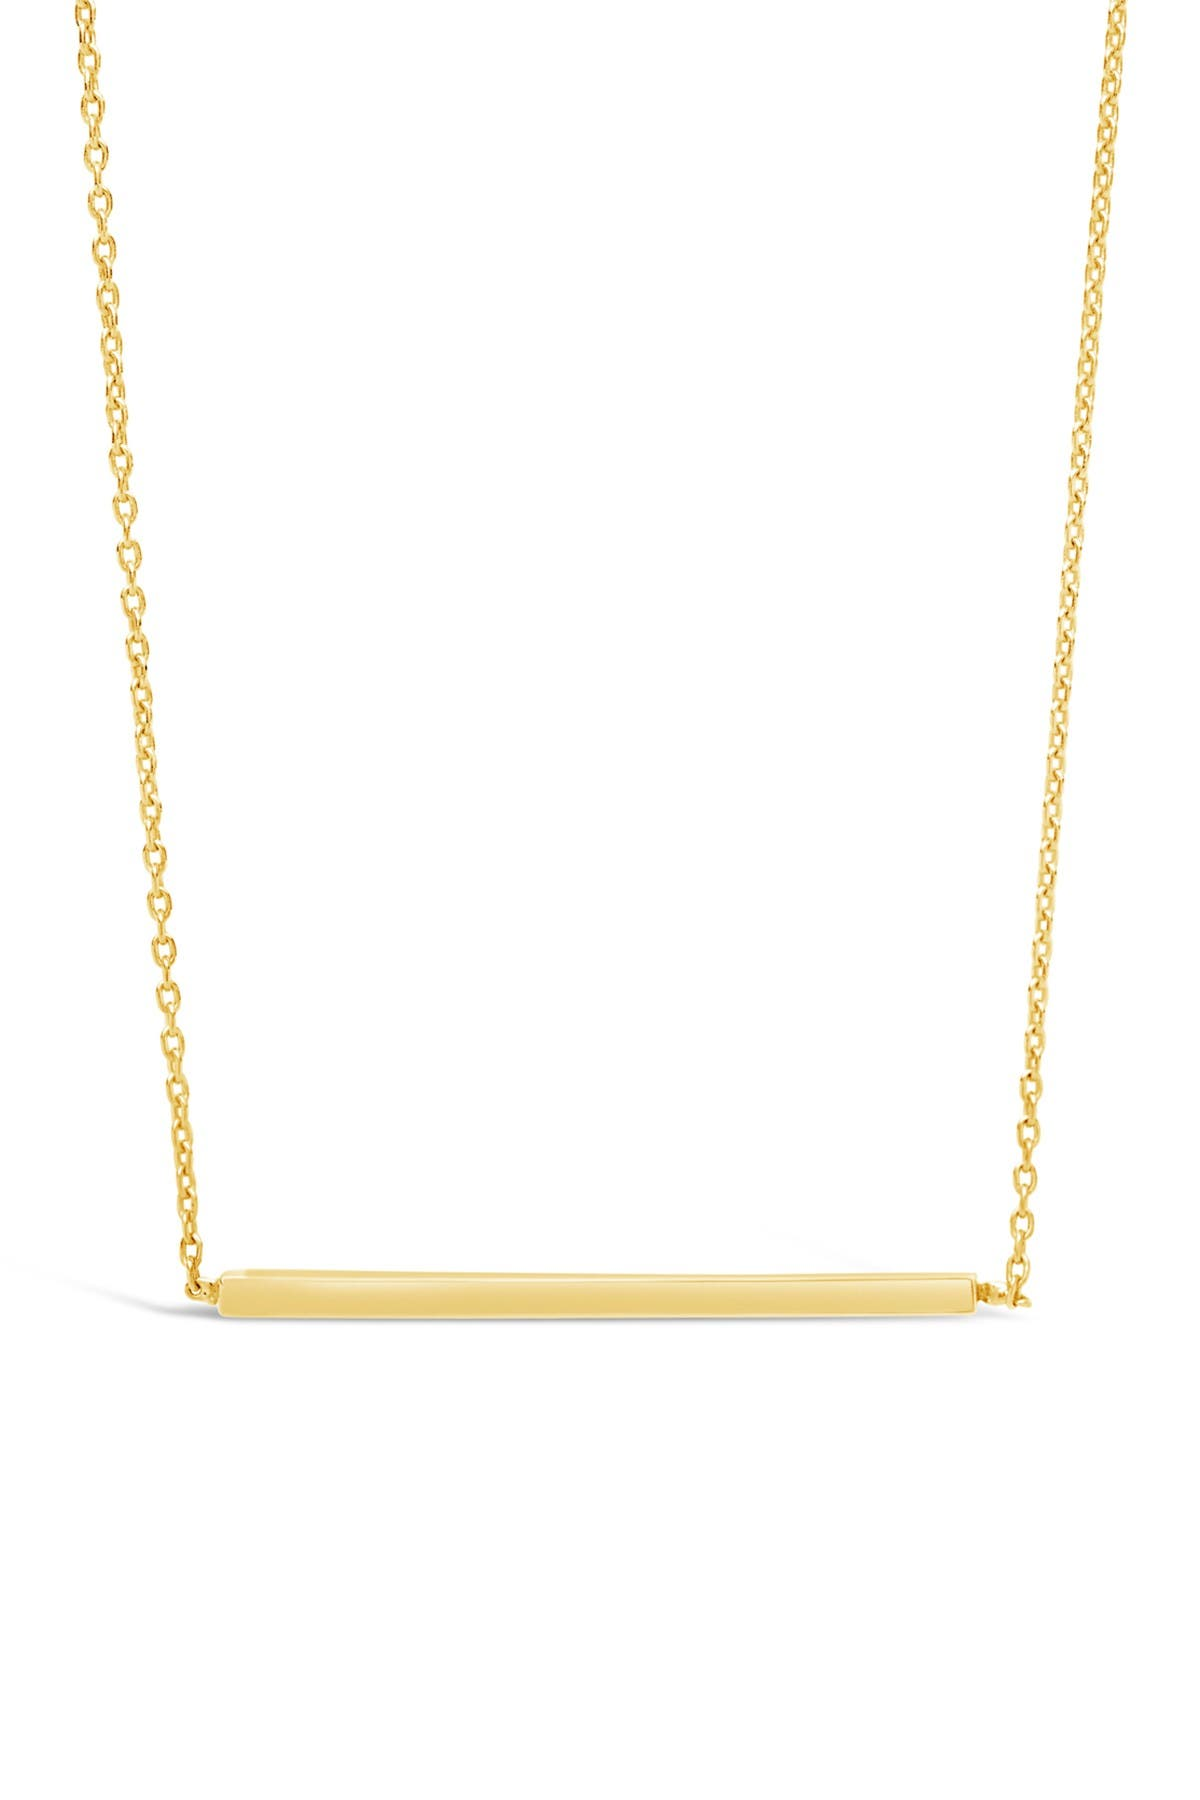 Image of Sterling Forever 14K Gold Vermeil Plated Sterling Silver Thin Bar Necklace